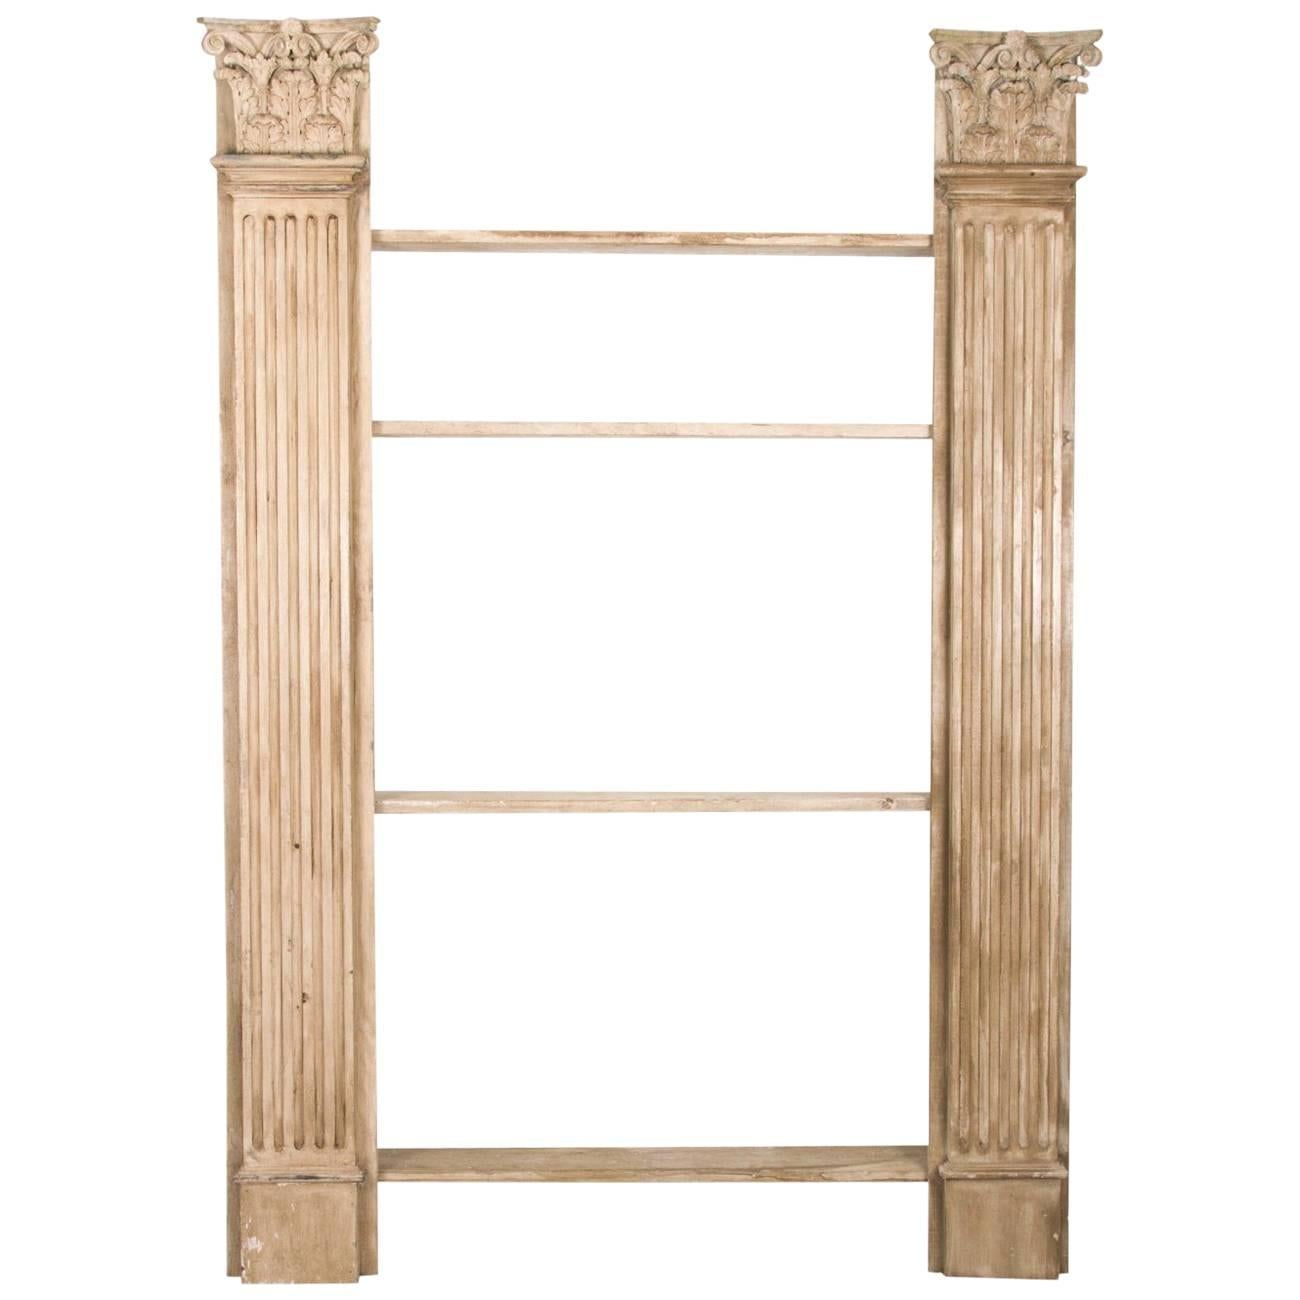 French Painted Bookshelf with Architectural Columns